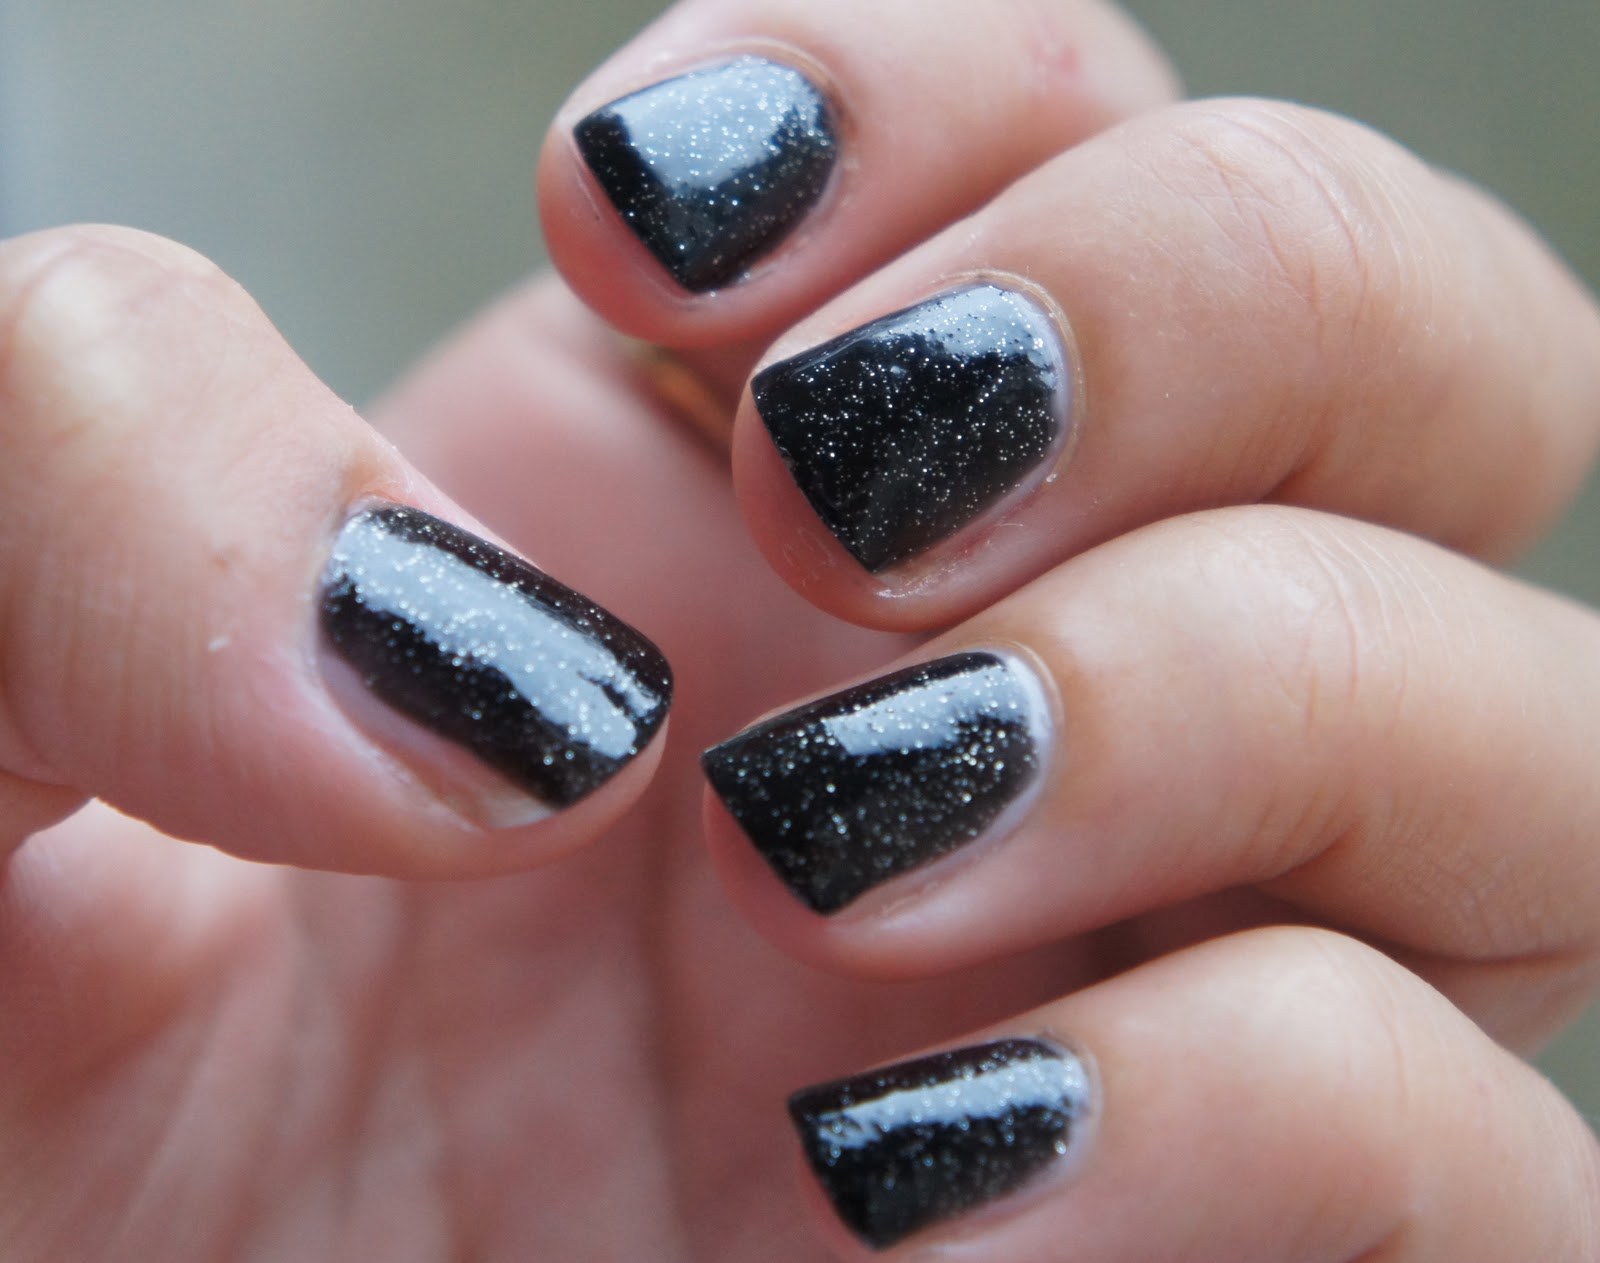 What do you think about black polishes?